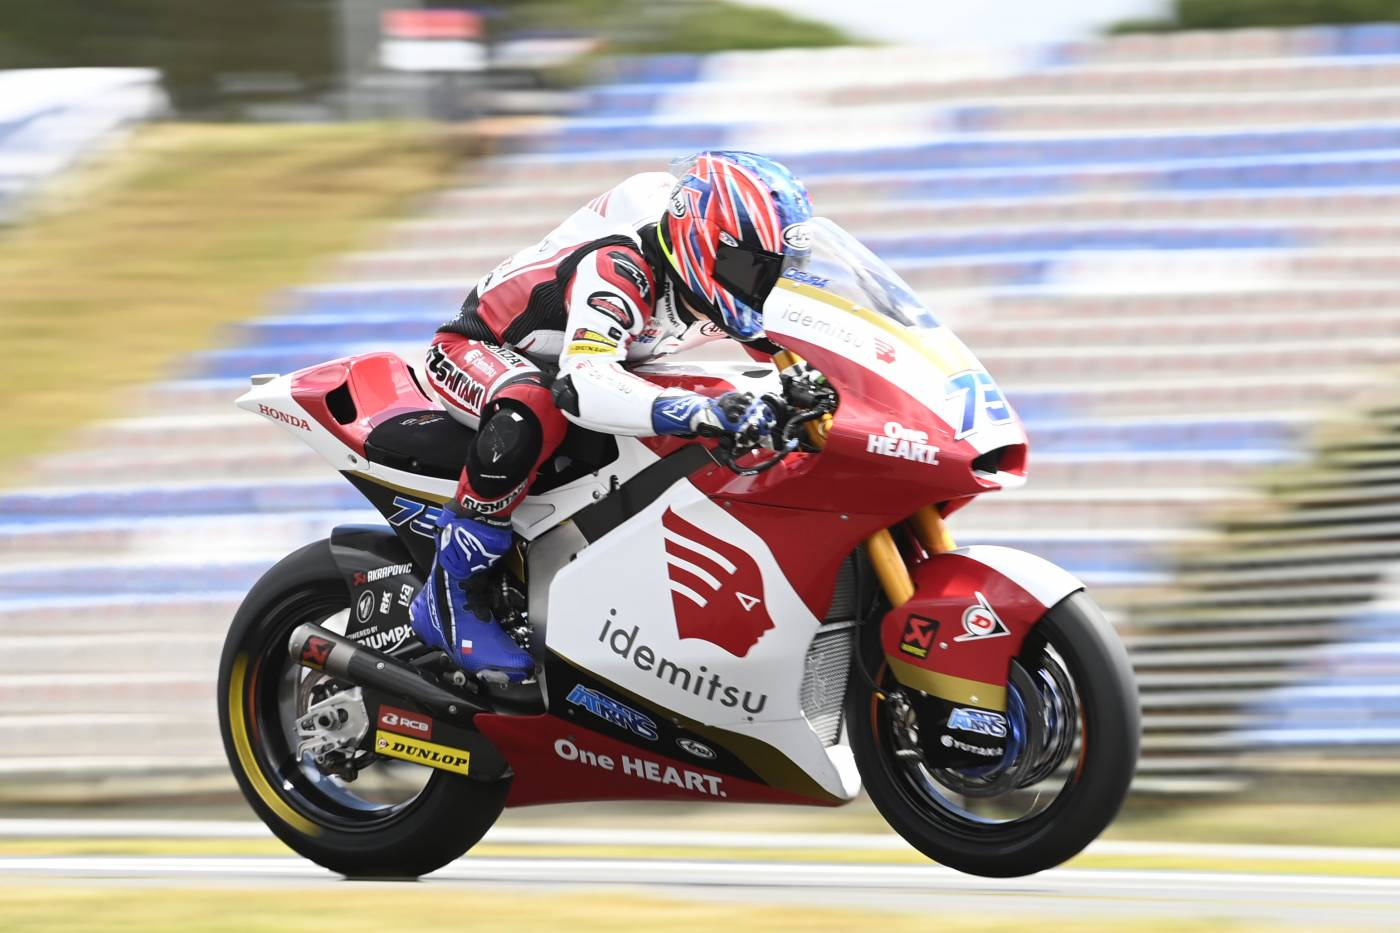 Ogura aims high after ill luck in Portugal